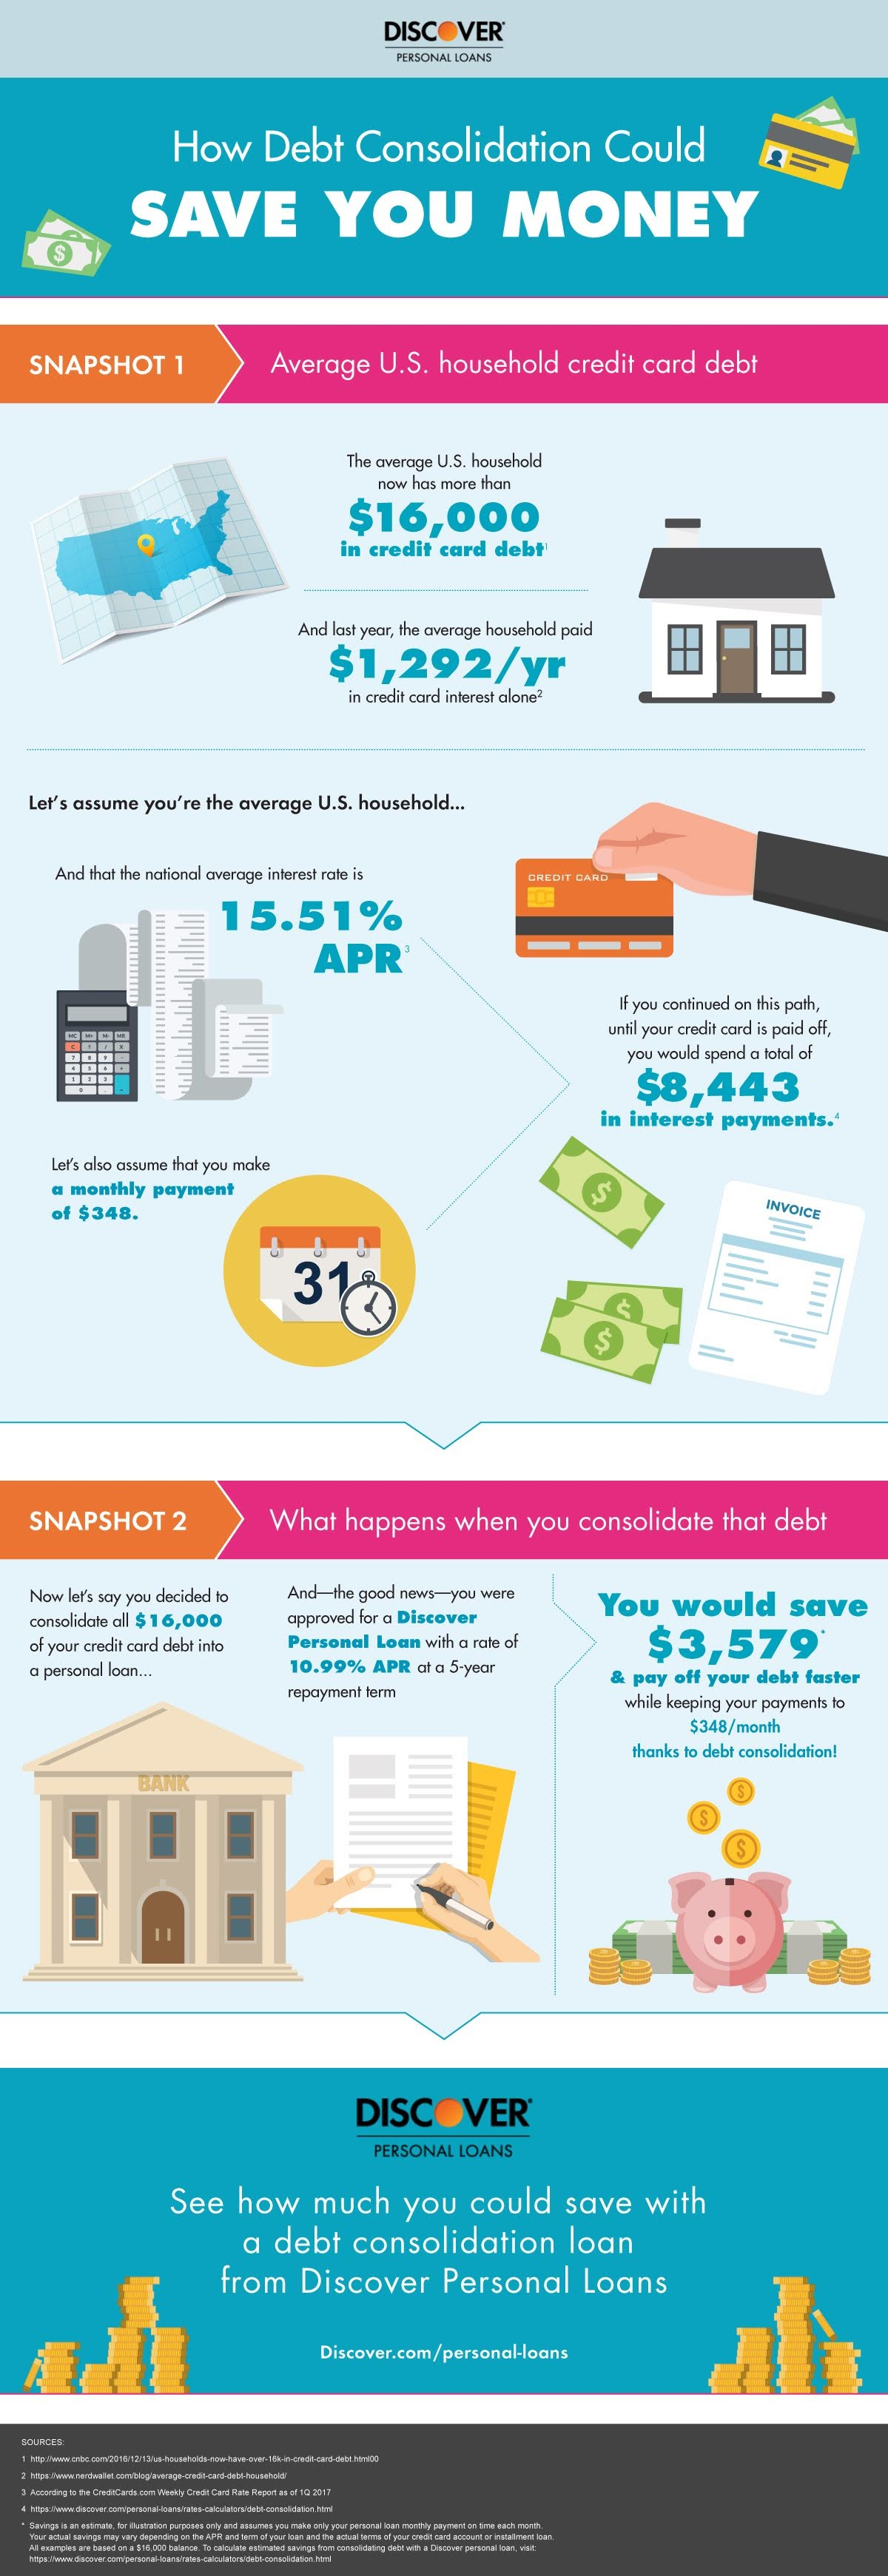 How Does Debt Consolidation Work? #infographic